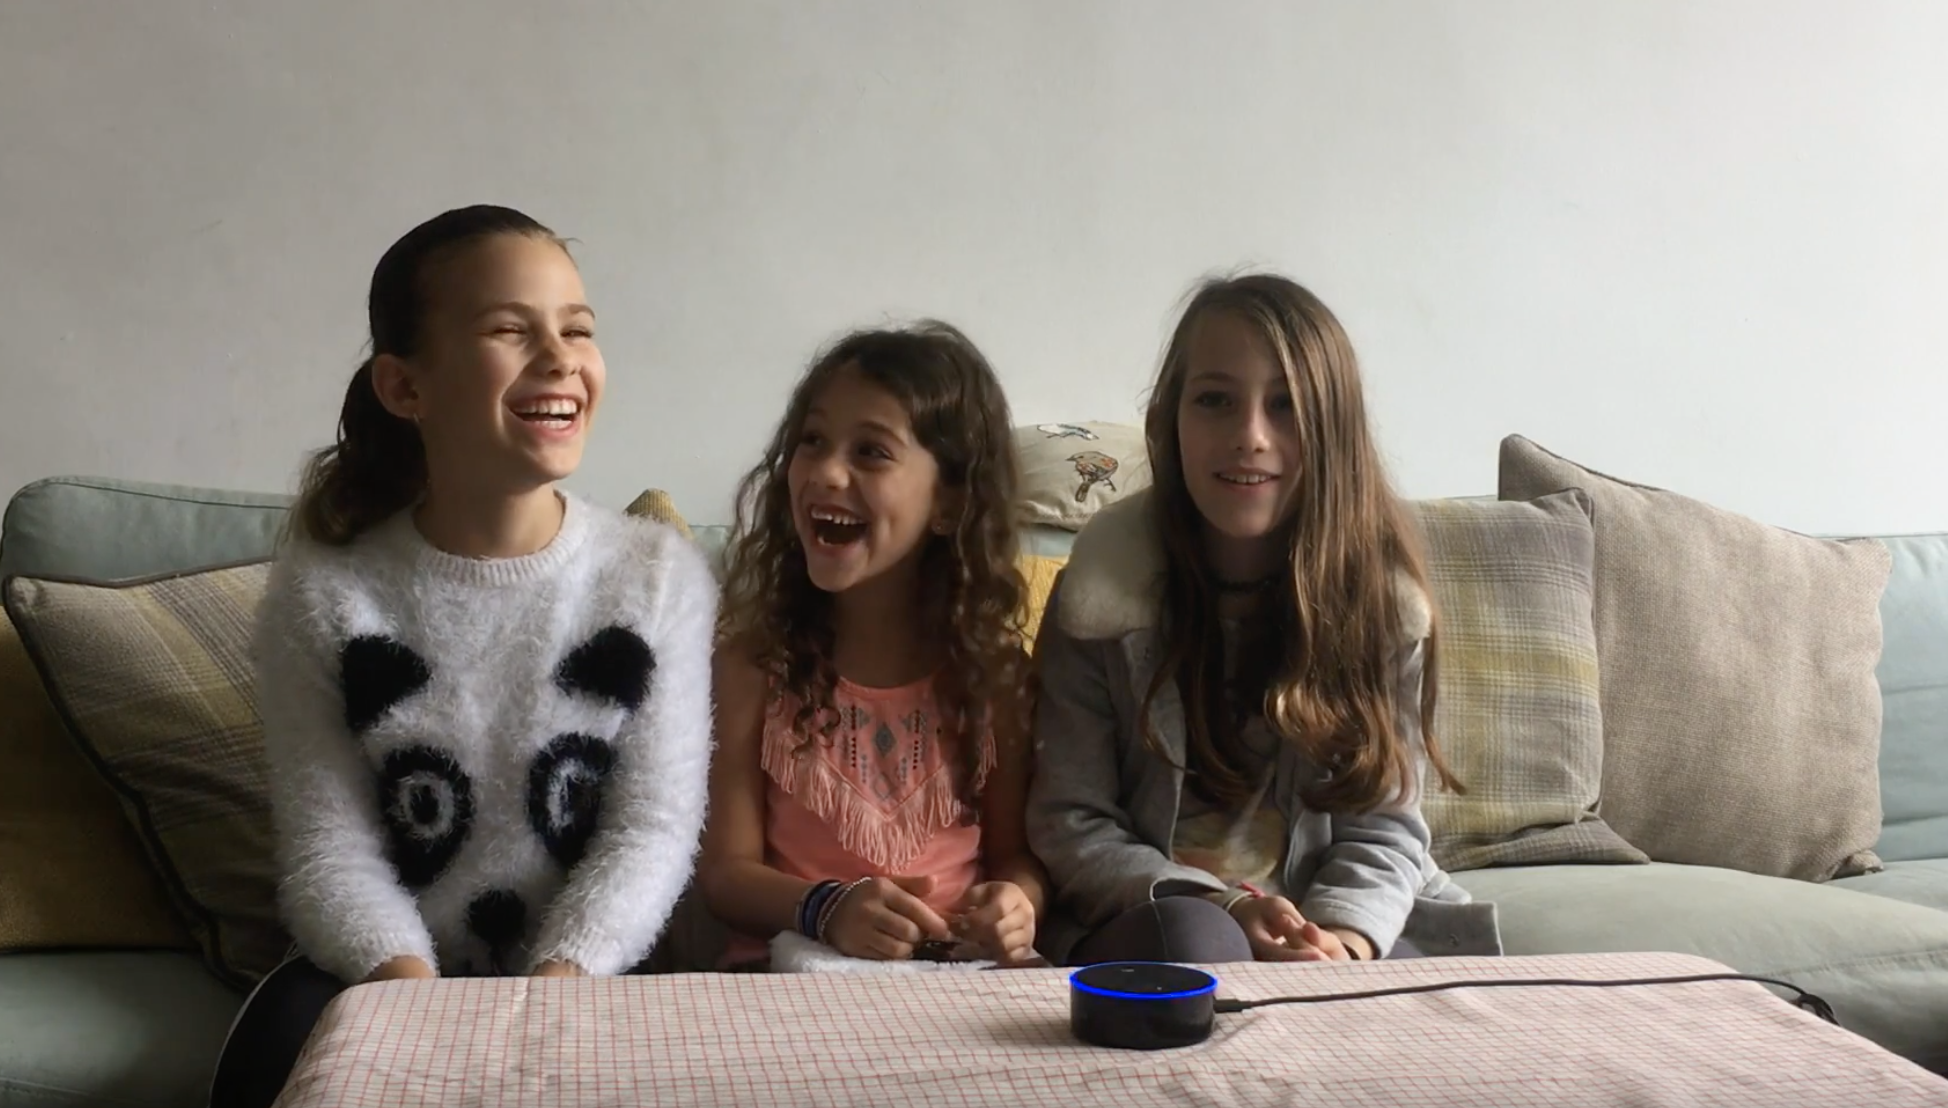 Kids Court, the Grand Prize Winner from Amazon's Developer Contest, Disappears from the Alexa Skills Store